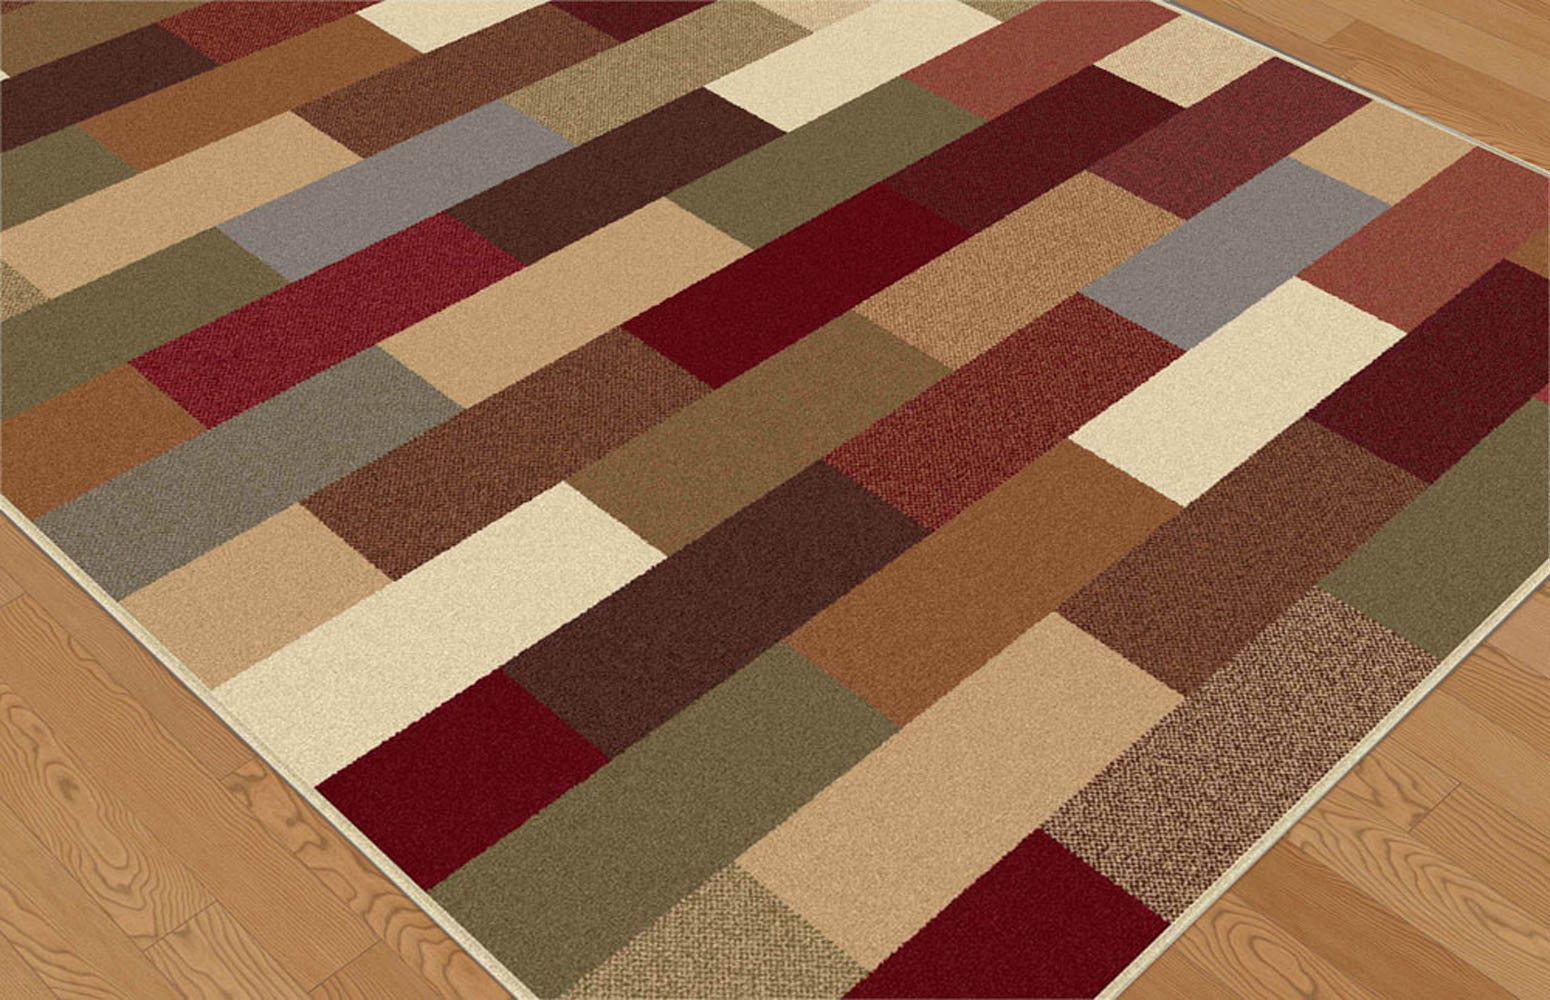 CONTEMPORARY Green BLUE Brown RED Geometric AREA Rug